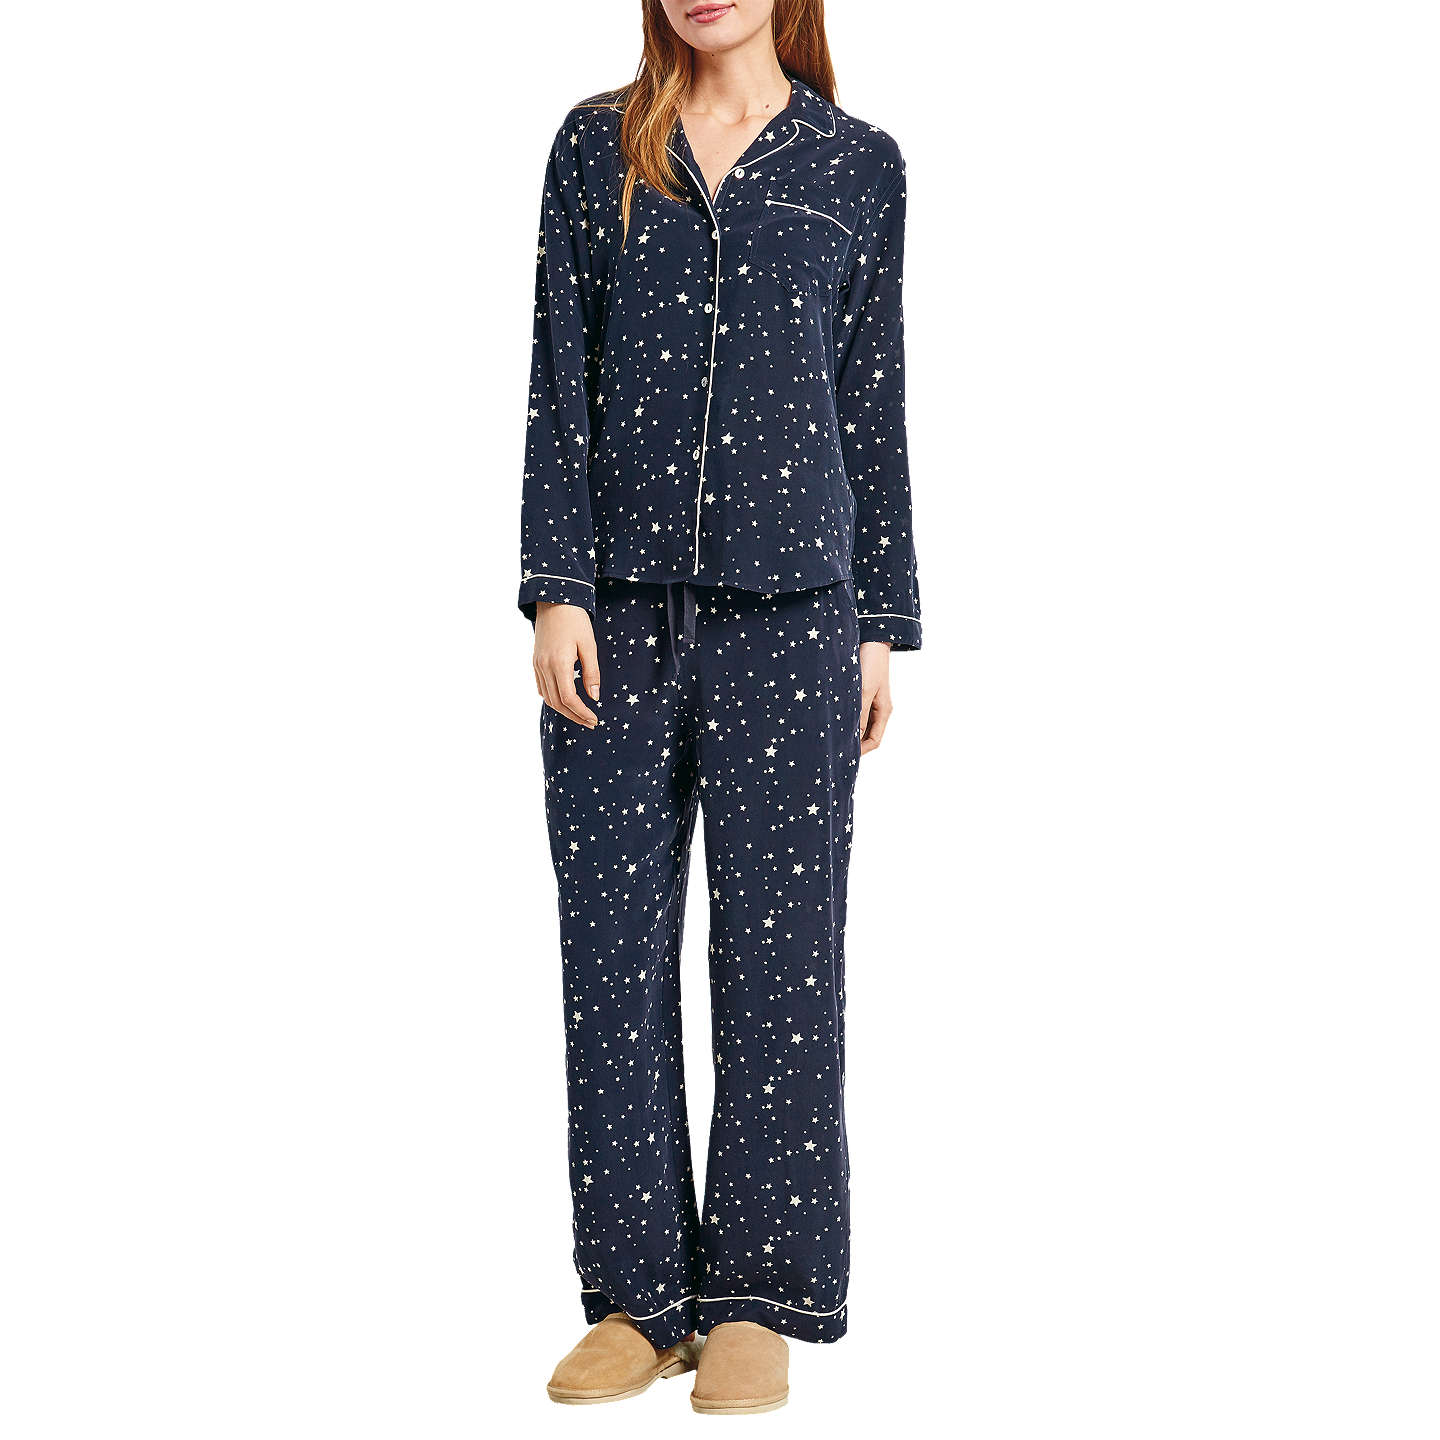 Buyhush Scatter Star Silk Pyjamas, White/Midnight, XS Online at johnlewis.com